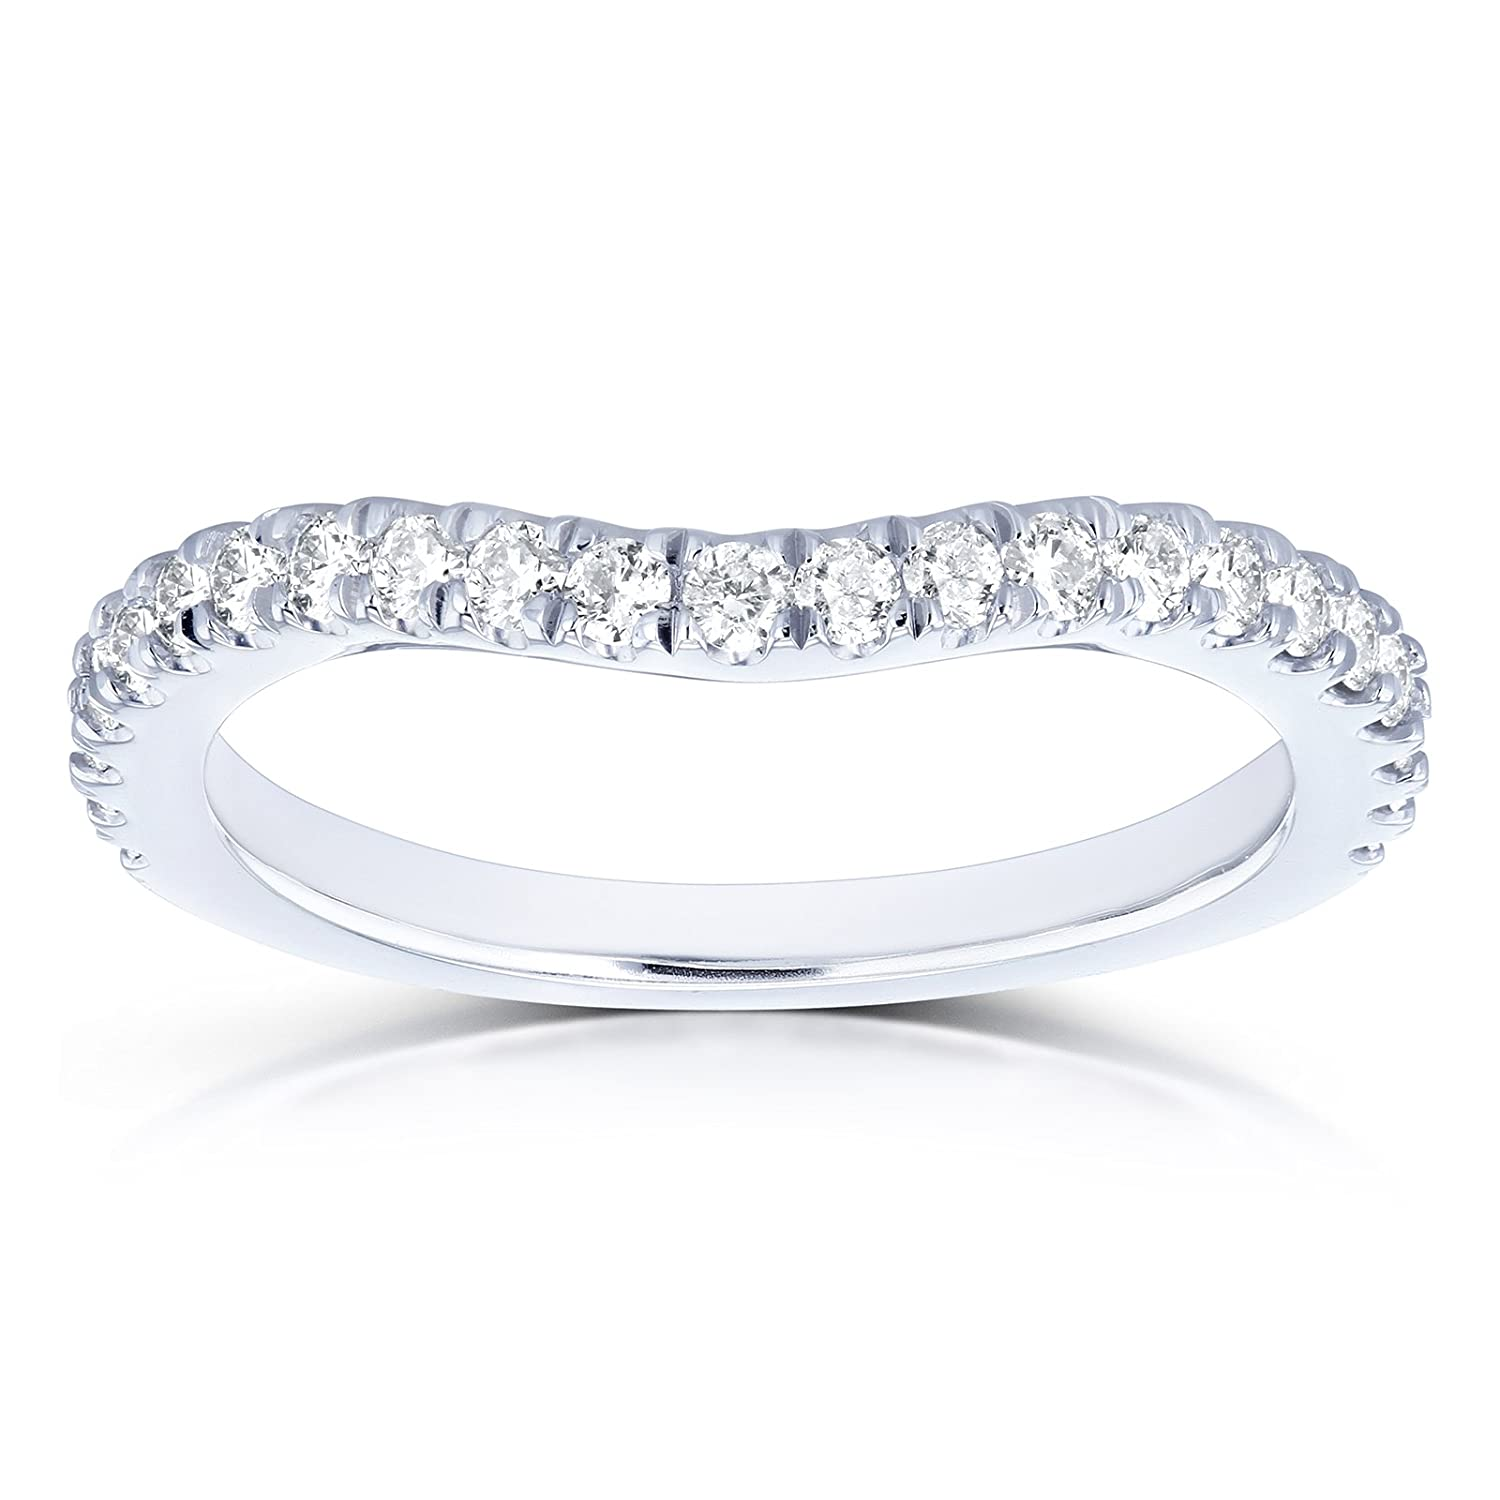 Amazon Diamond Curved Wedding Band 13 Ctw In 14k White Gold Jewelry: White Gold Diamond Curved Wedding Bands At Reisefeber.org